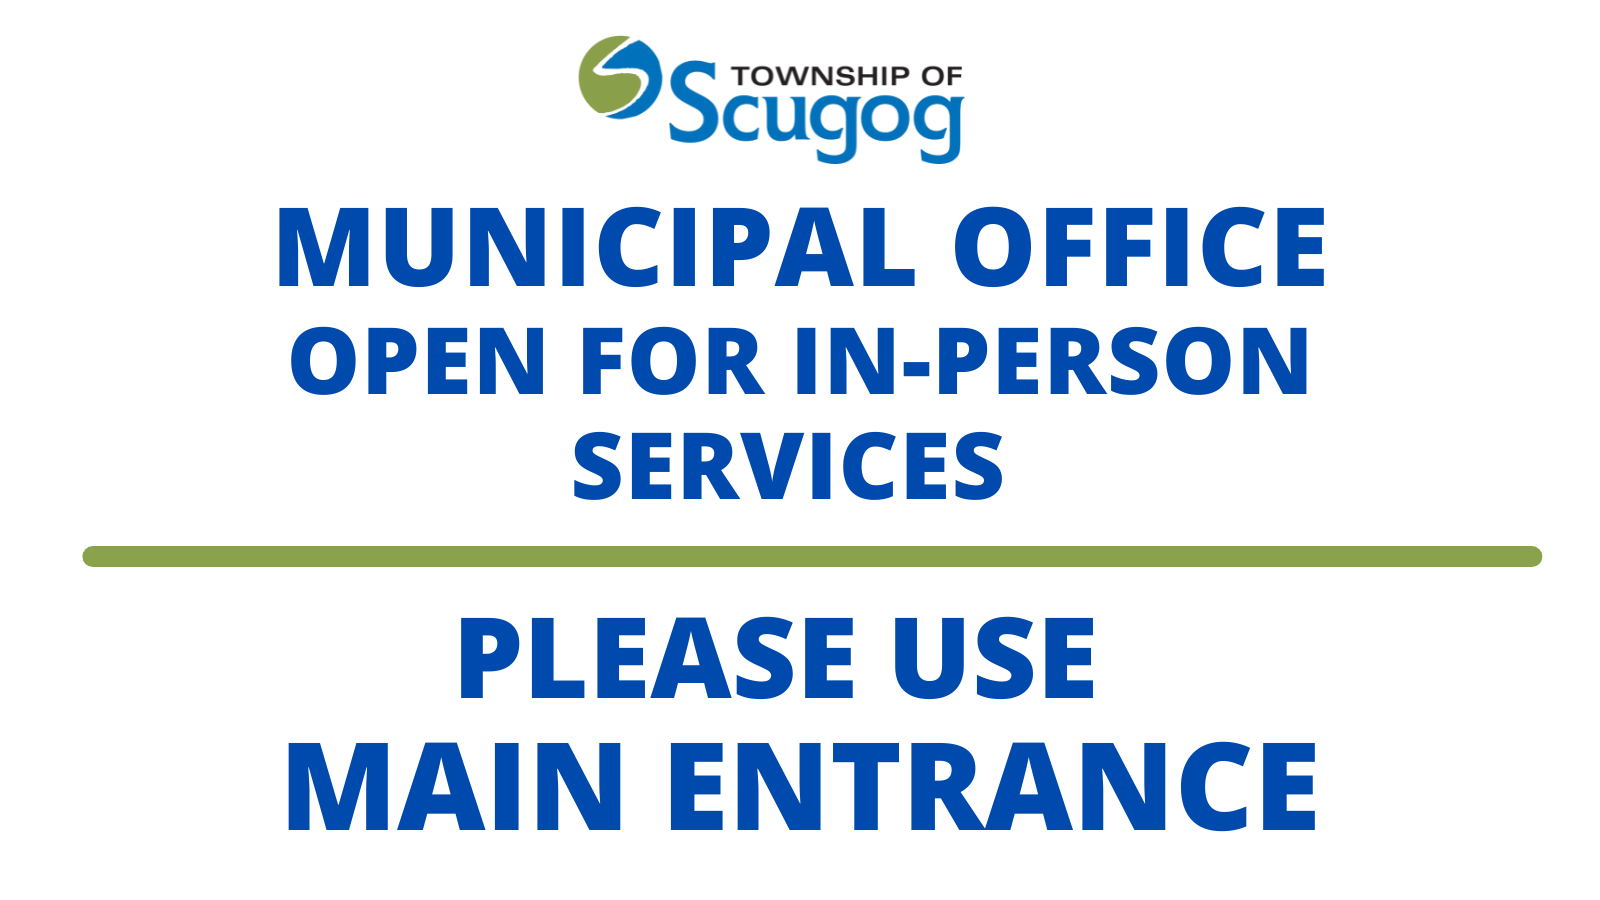 Municipal Office Open for in person service. Use Perry Street entrance